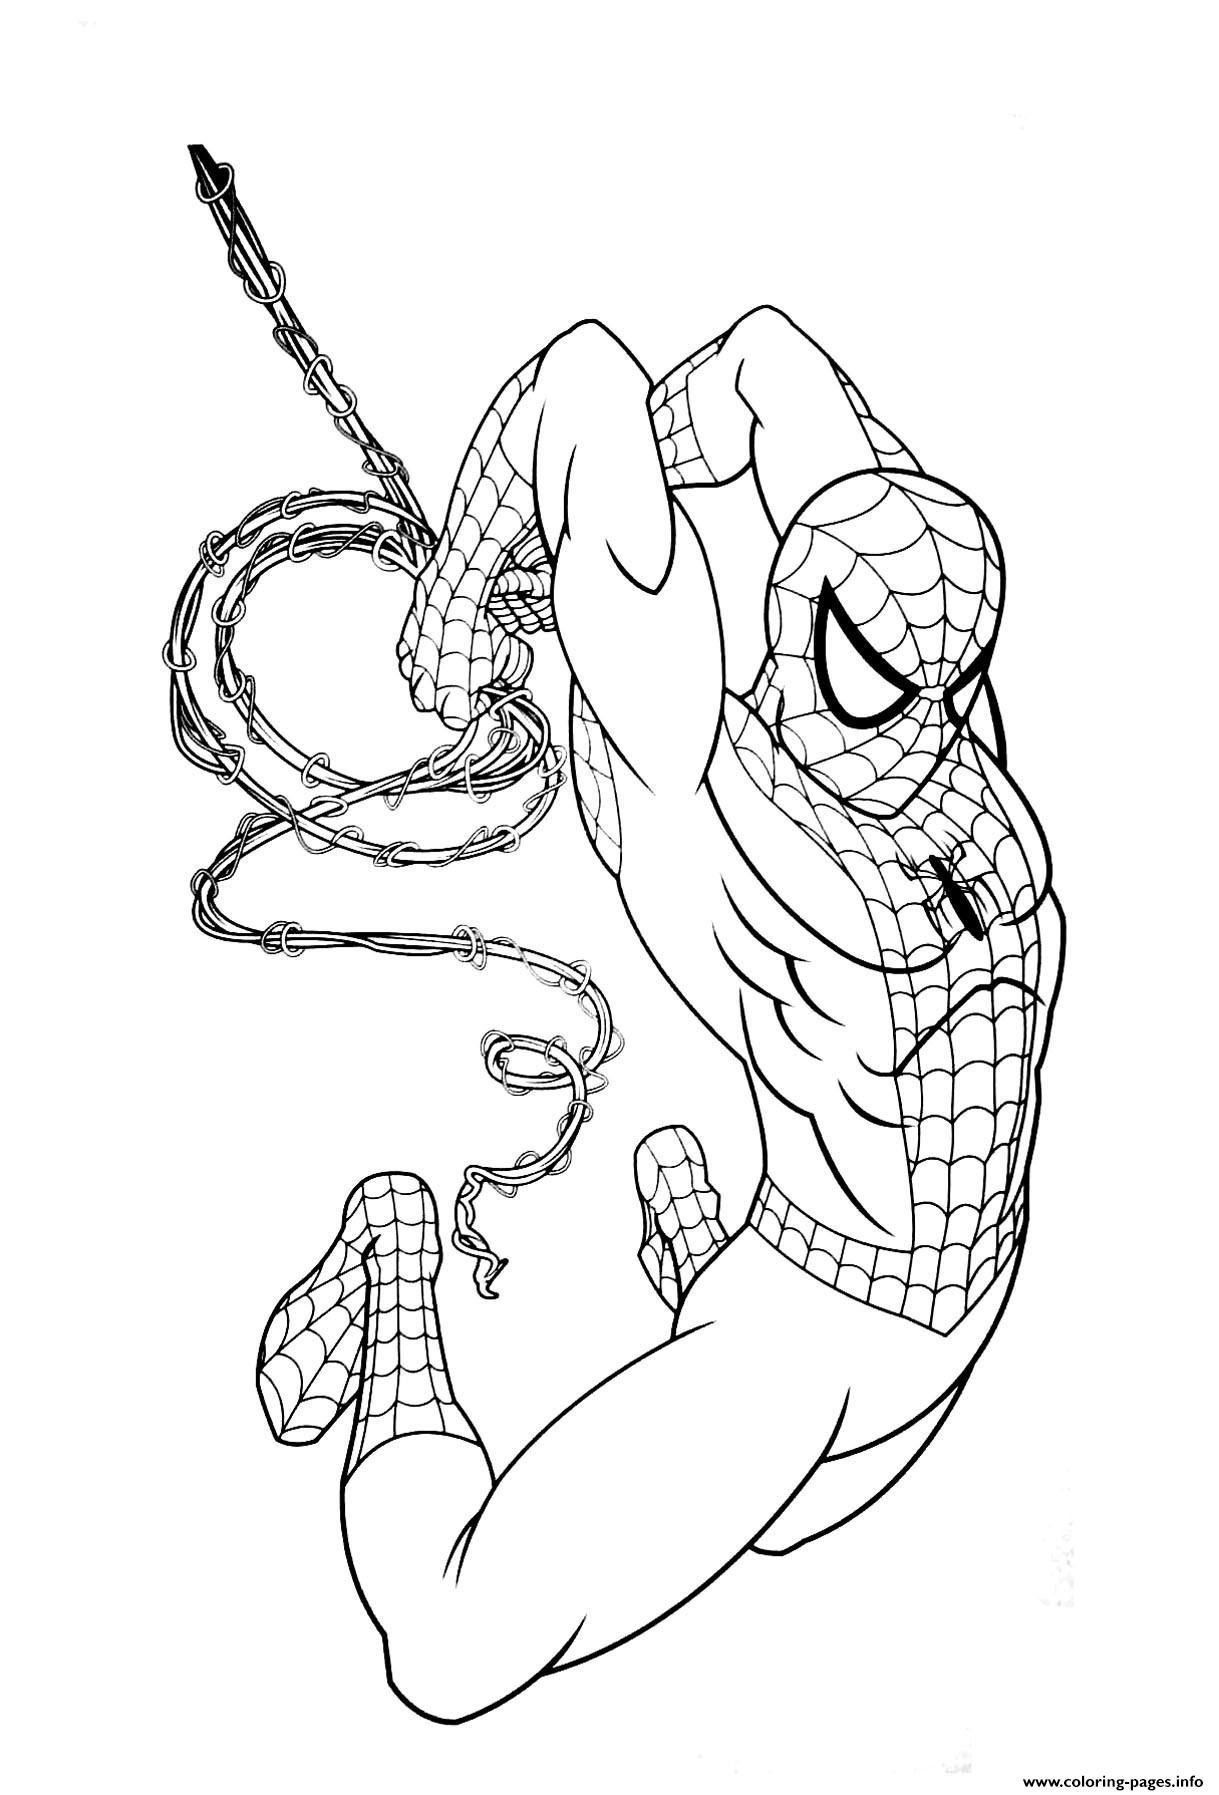 Marvel Coloring Pages For Kids Coloring Pages Spiderman Coloring Superhero Marvel Heroes In 2020 Superhero Coloring Avengers Coloring Superhero Coloring Pages